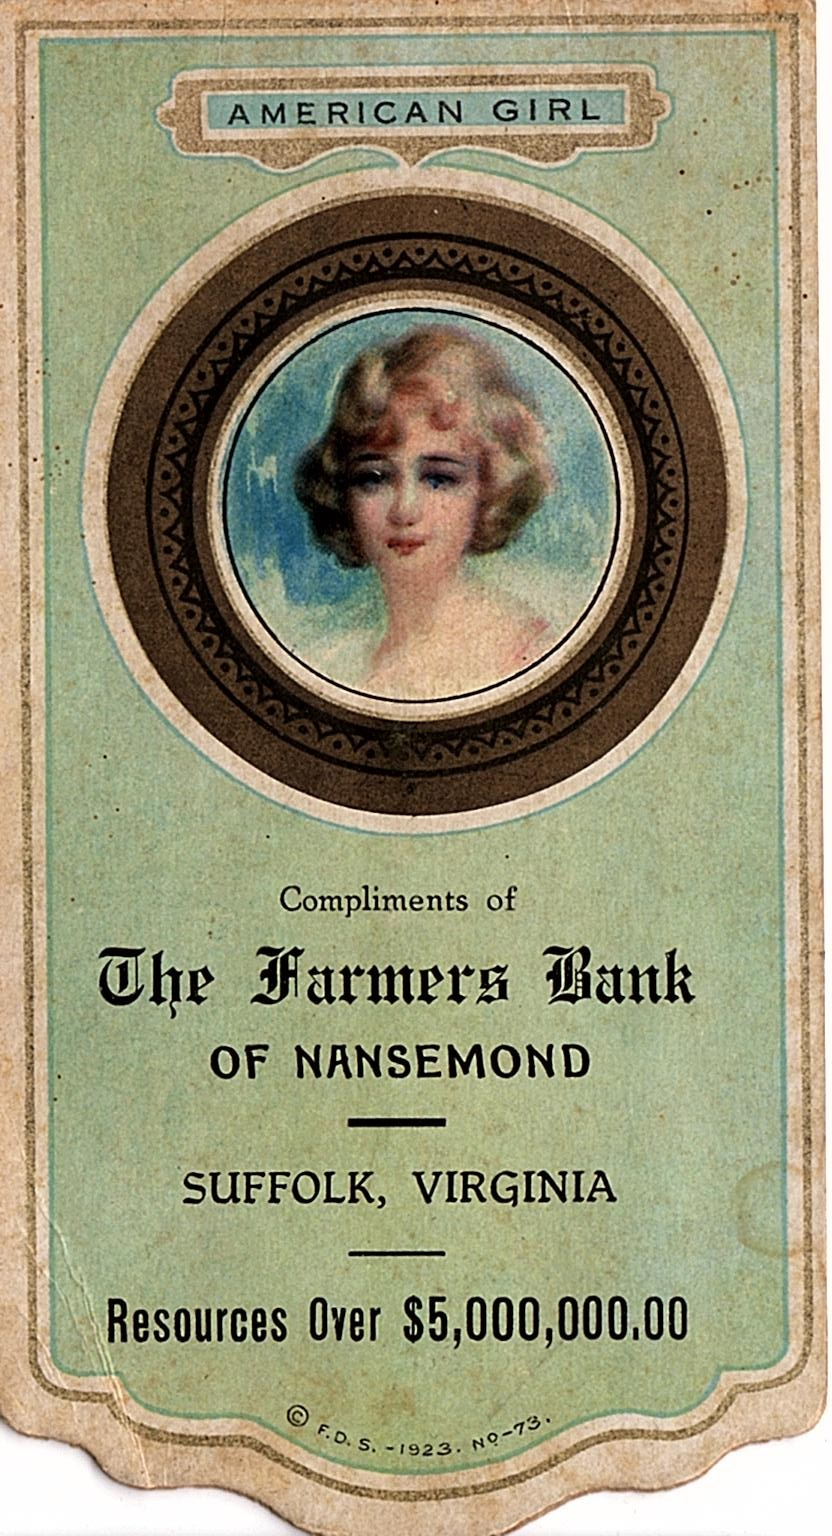 Farmer's Bank of Nansemond, American Girl